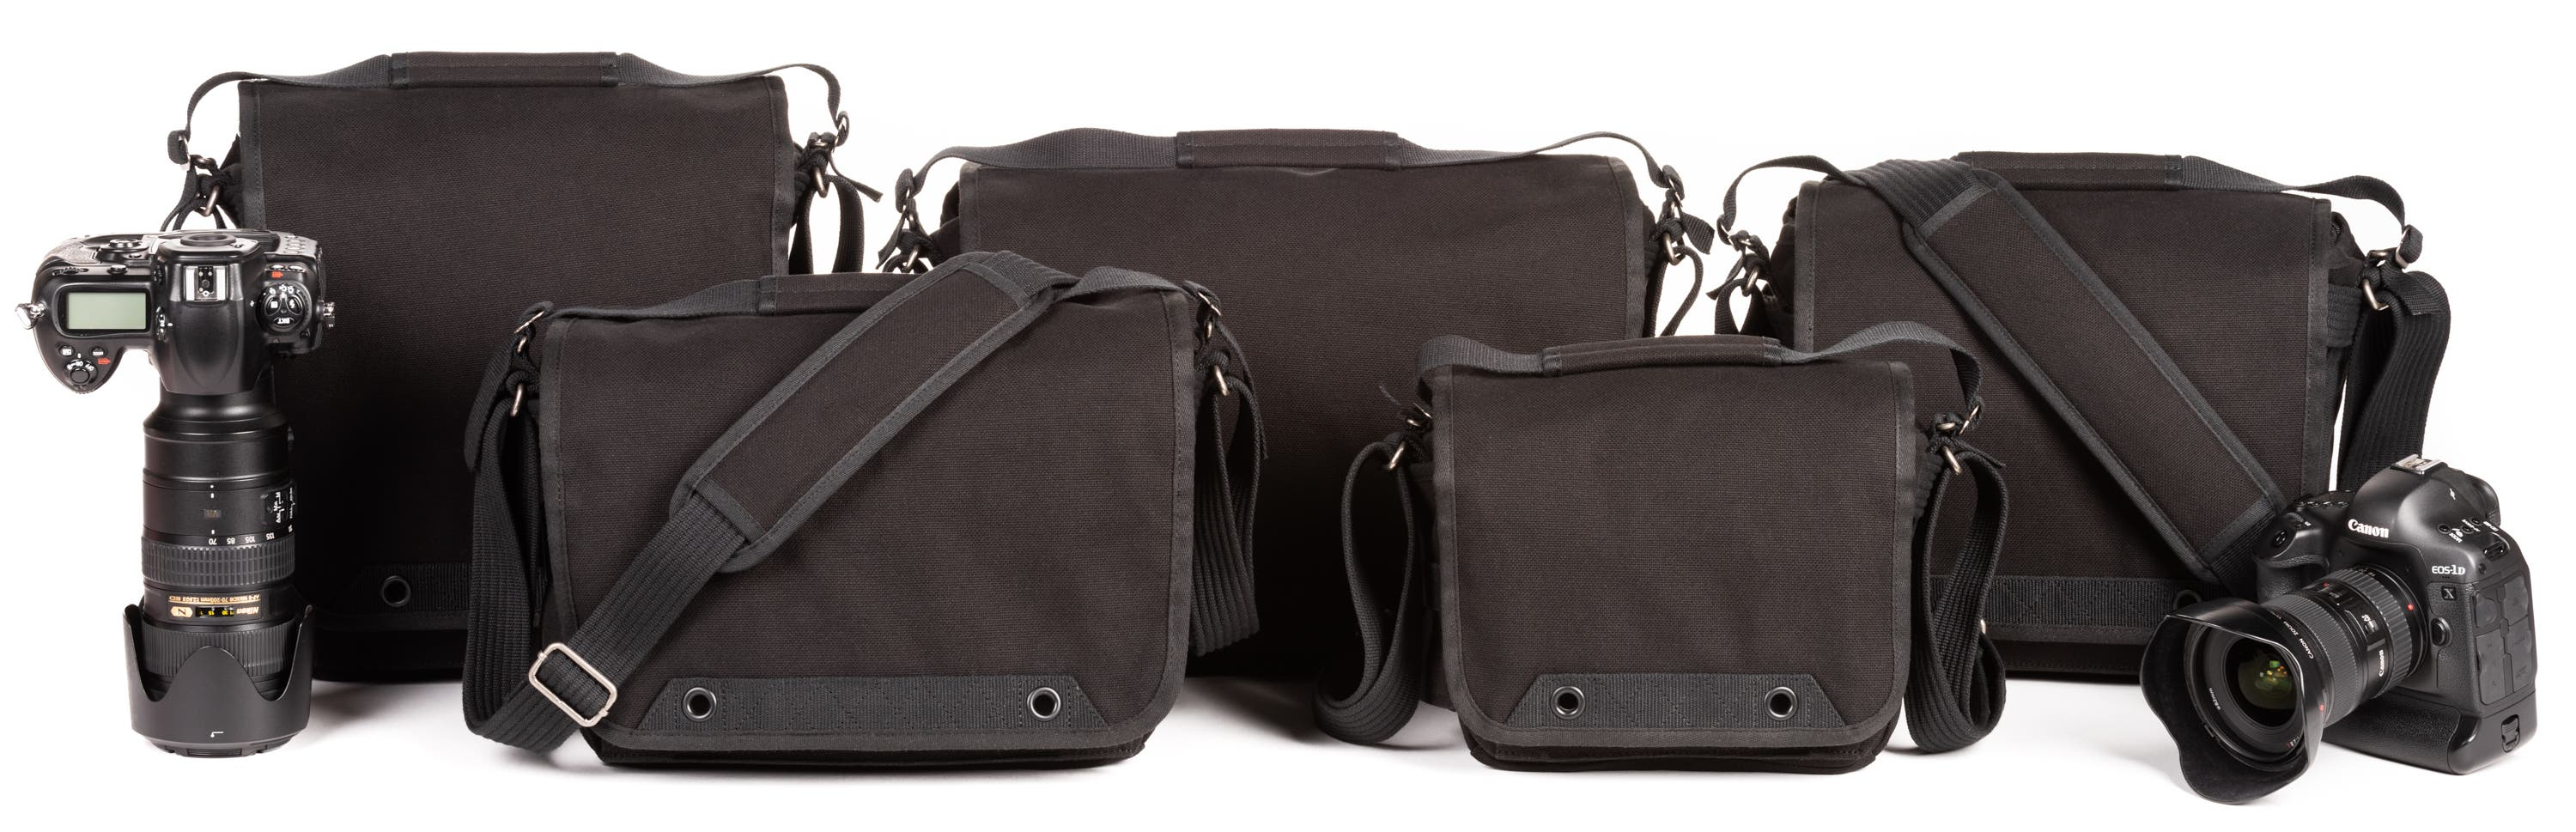 Think Tank's Retrospective Camera Bag Series Finally Comes in Black